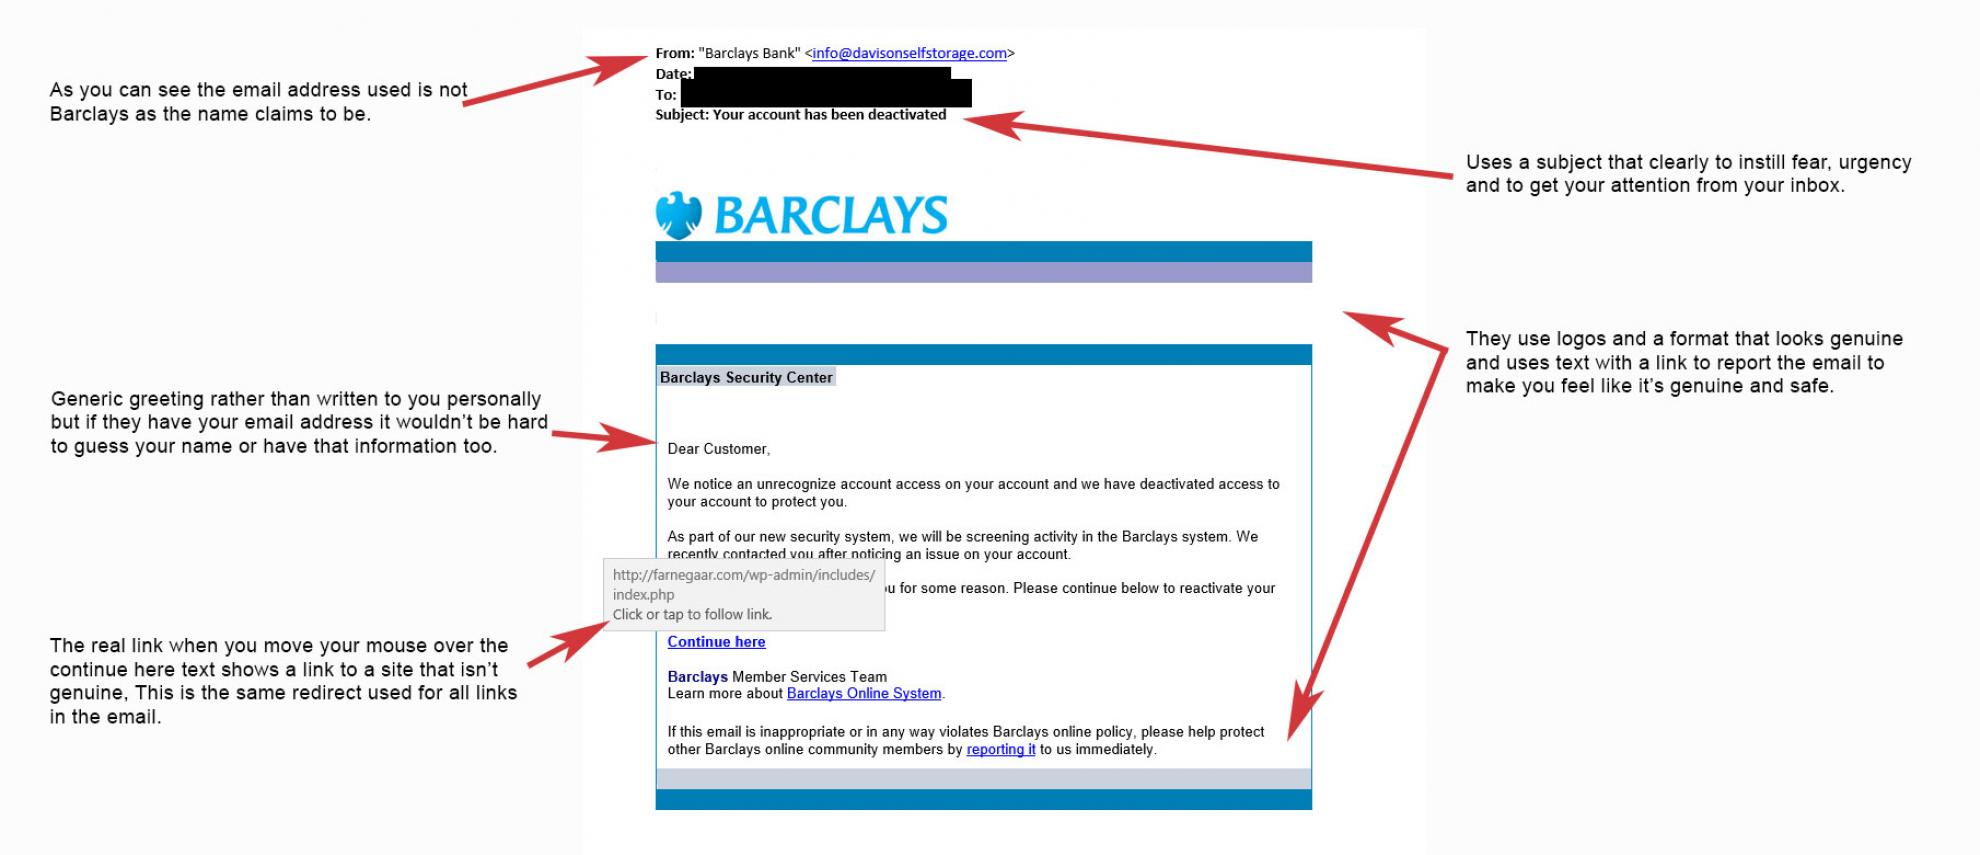 Scam Email Example - Barclays